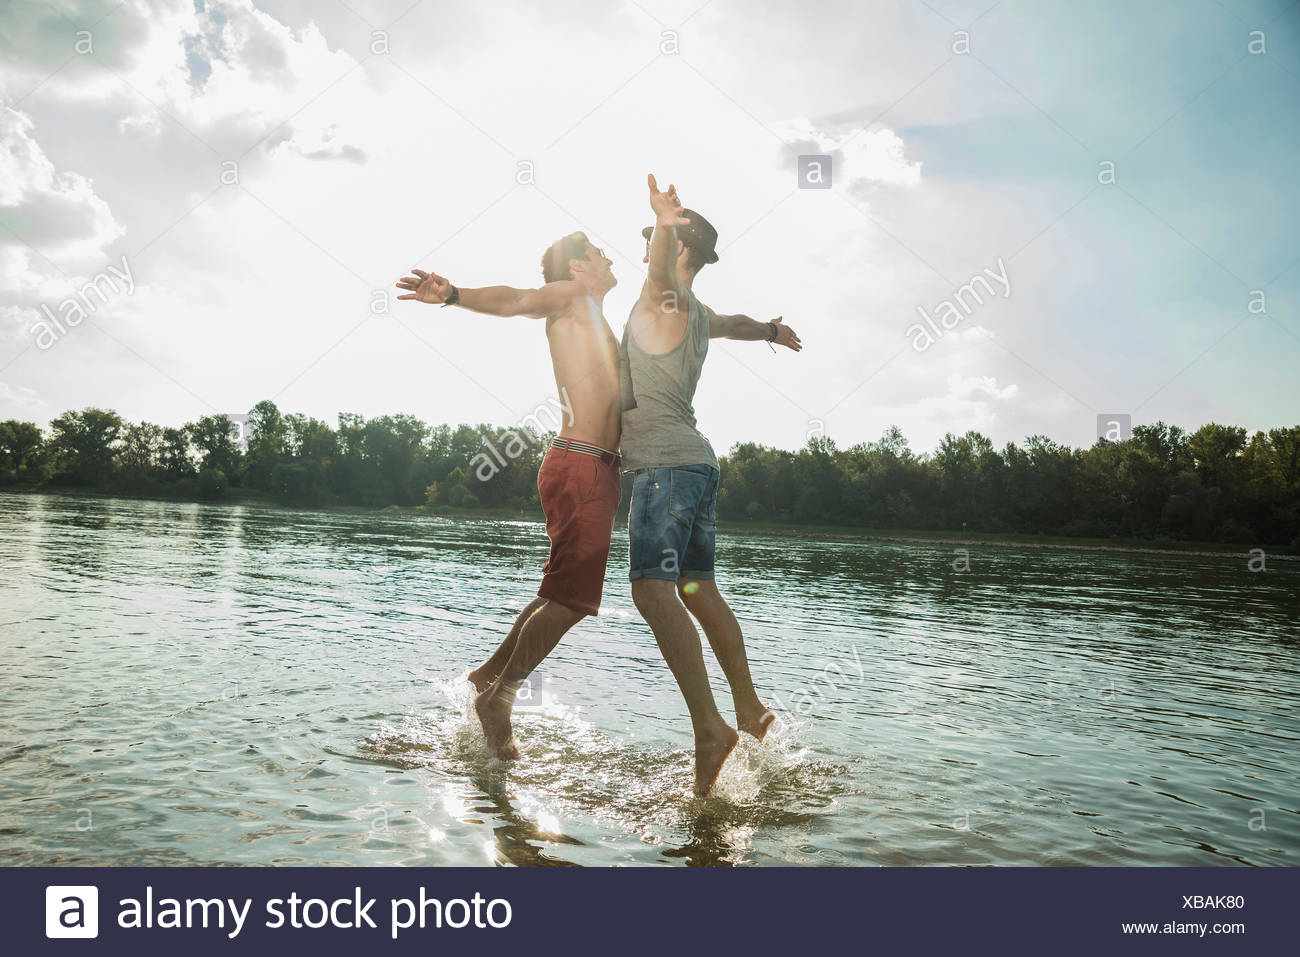 Young men chest bumping in lake - Stock Image